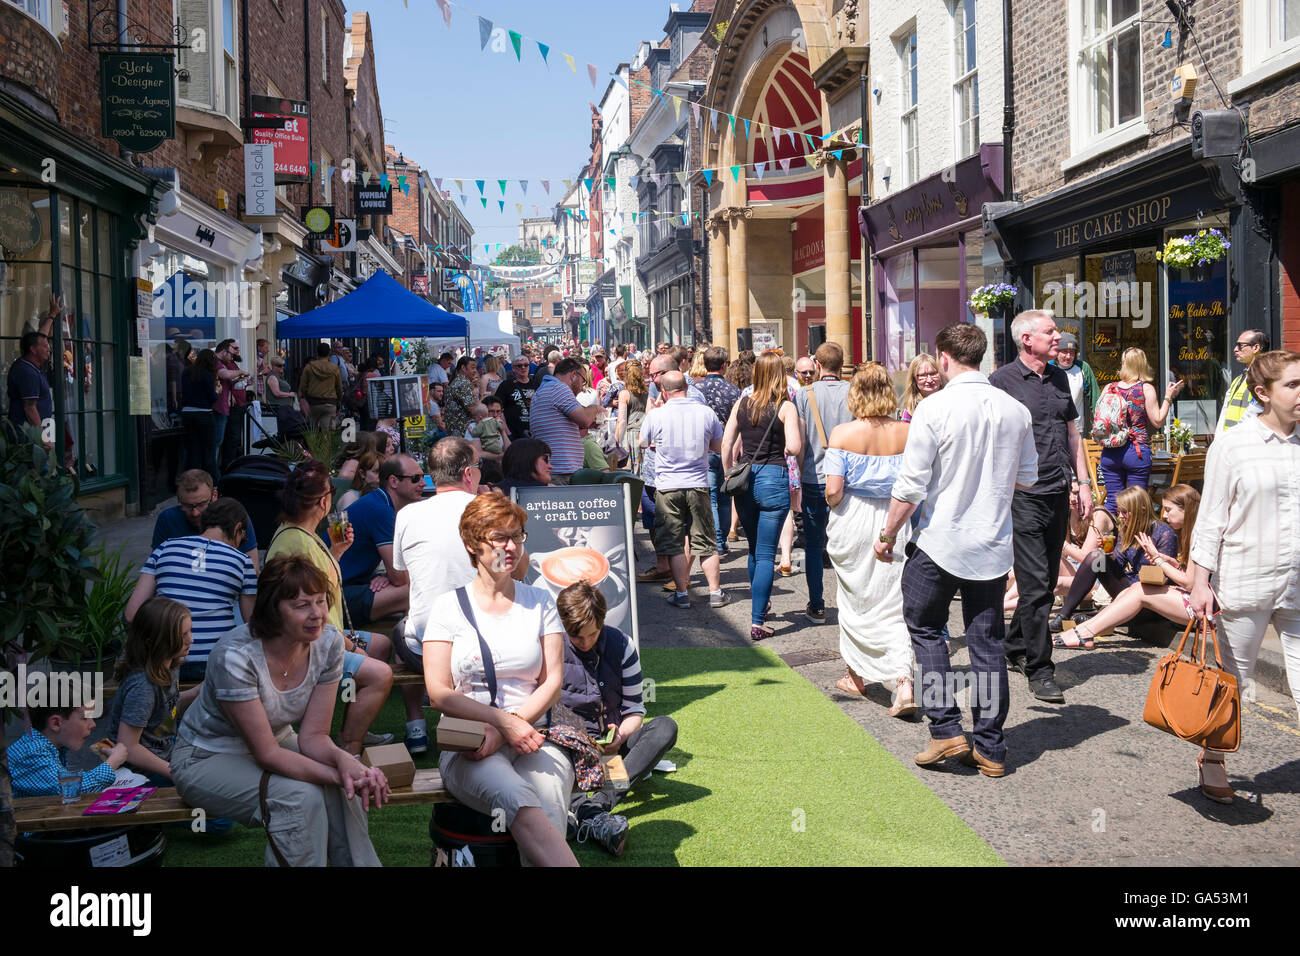 Families and friends enjoying the Fossgate Festival, City of York, England, UK - Stock Image